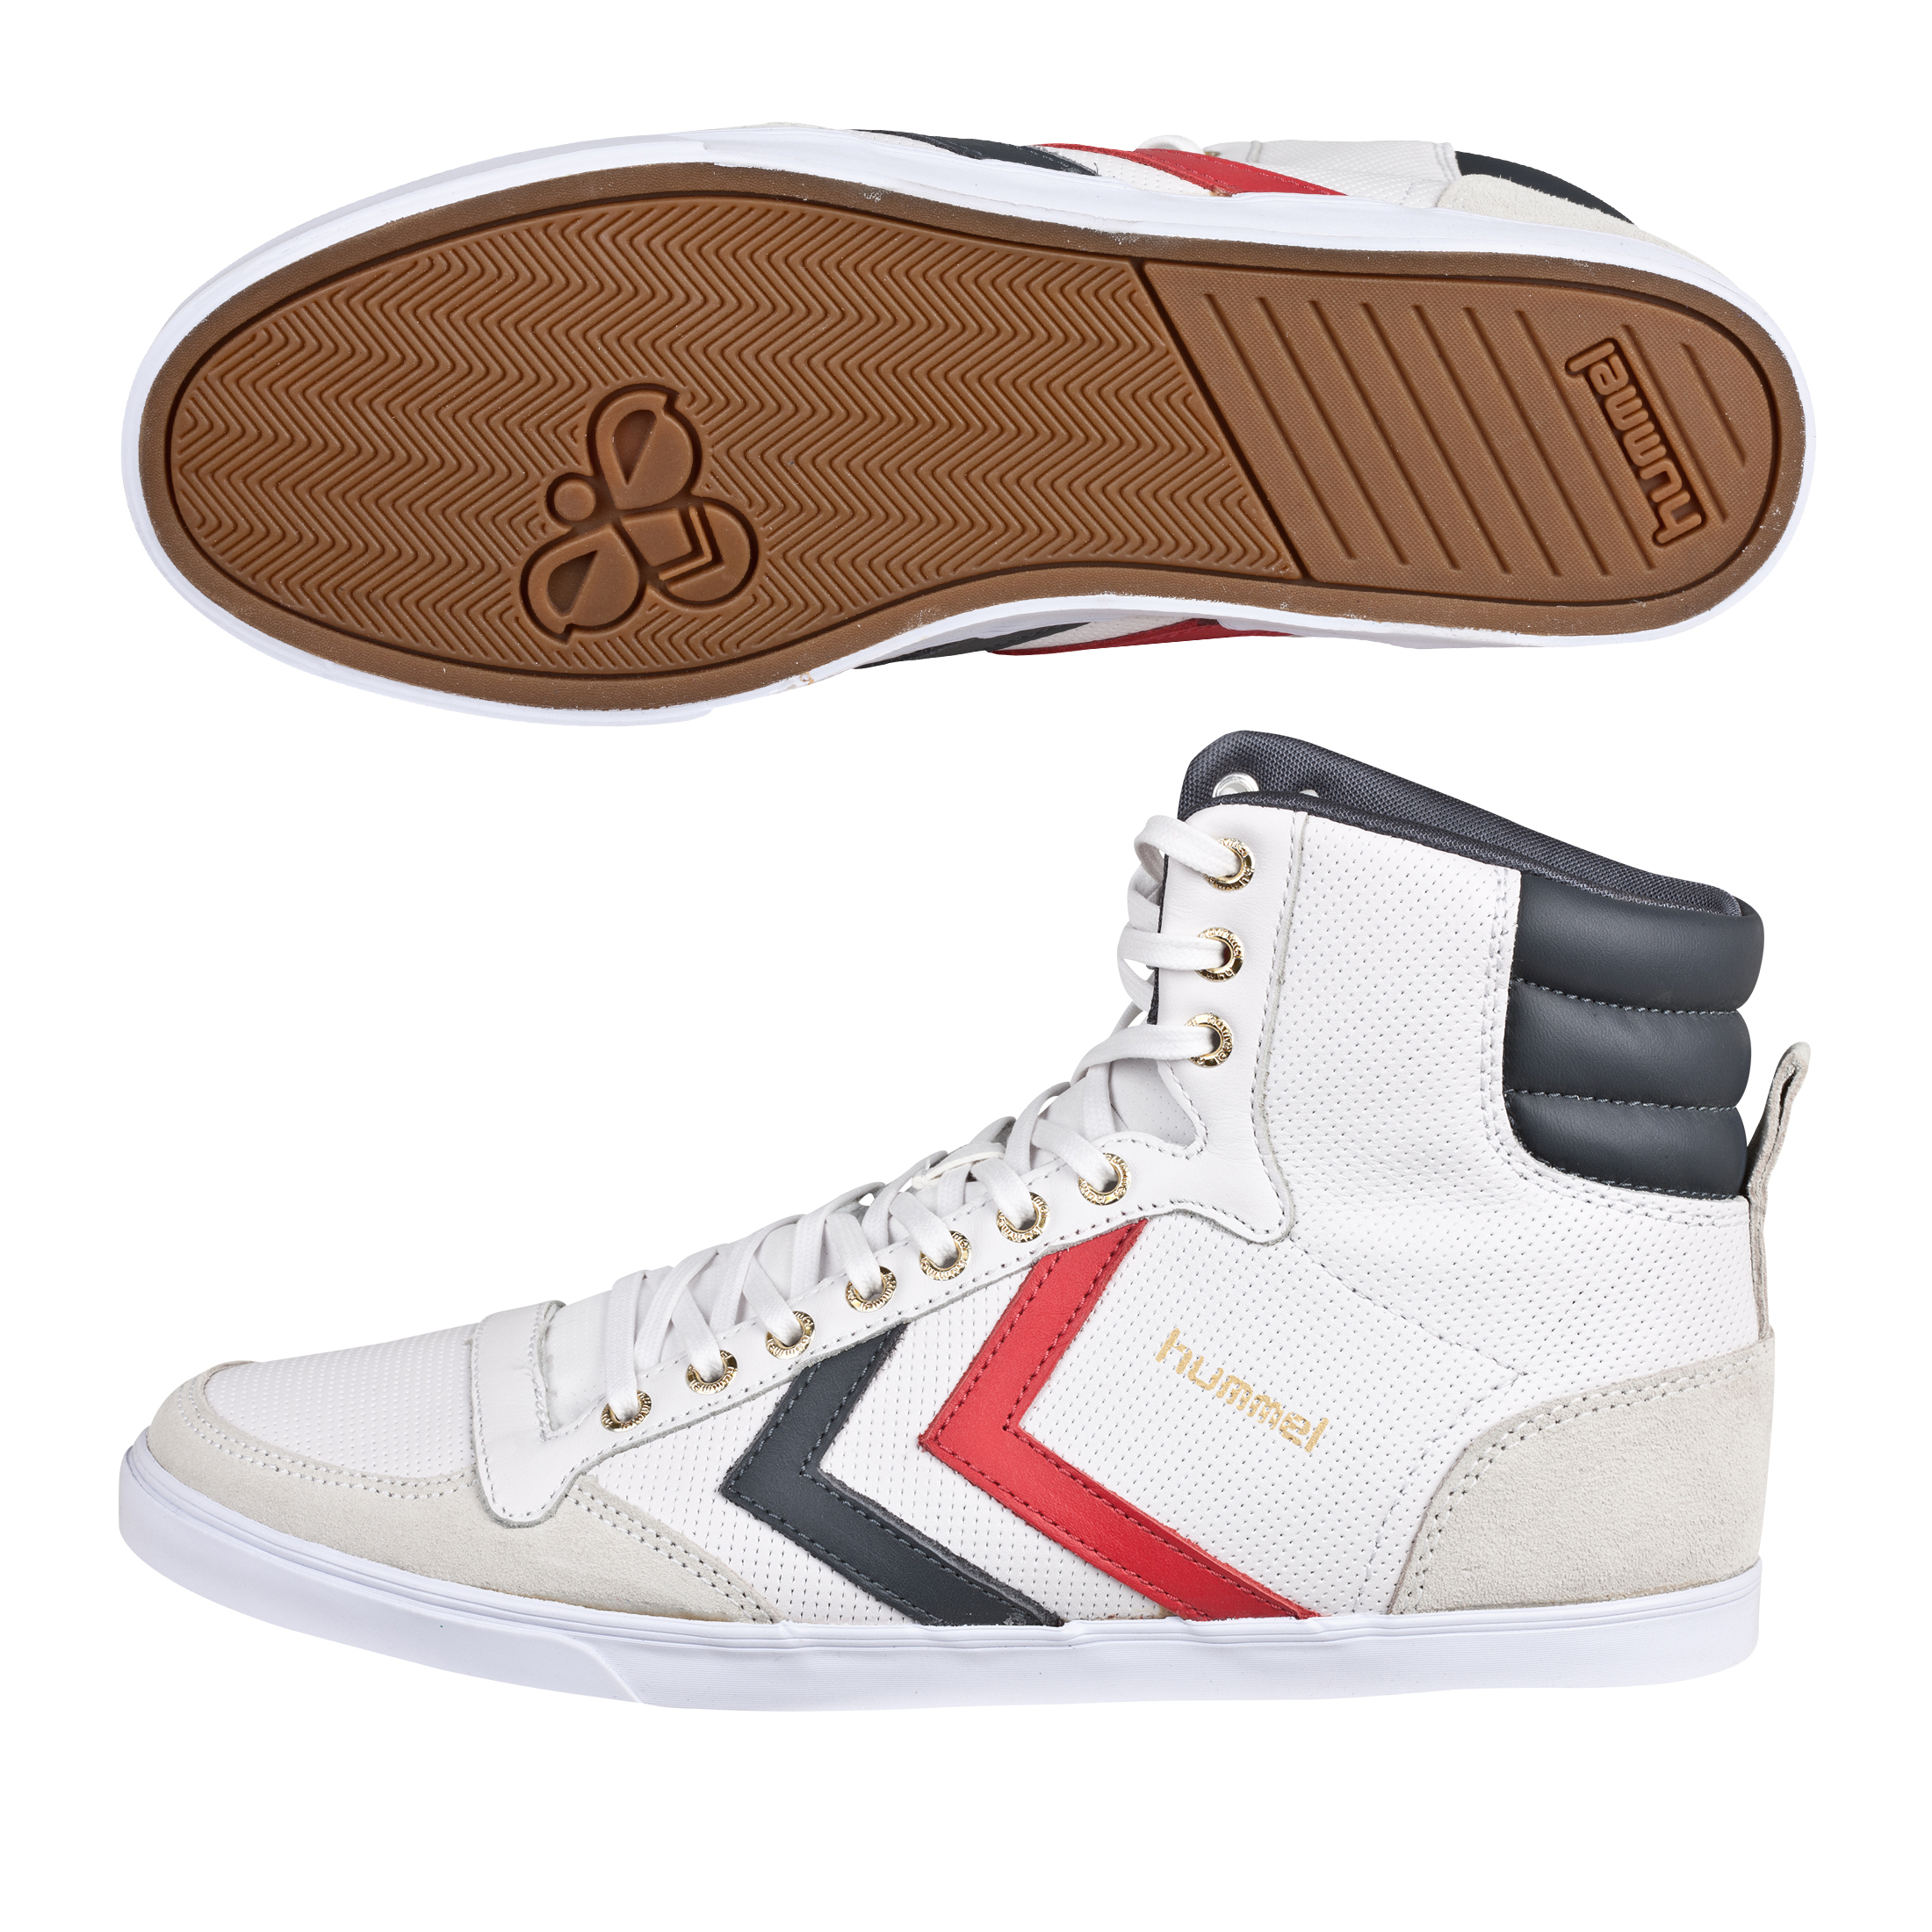 Hummel Slimmer Stadil High Leather Trainers - White/Castlerock/Ribbon Red